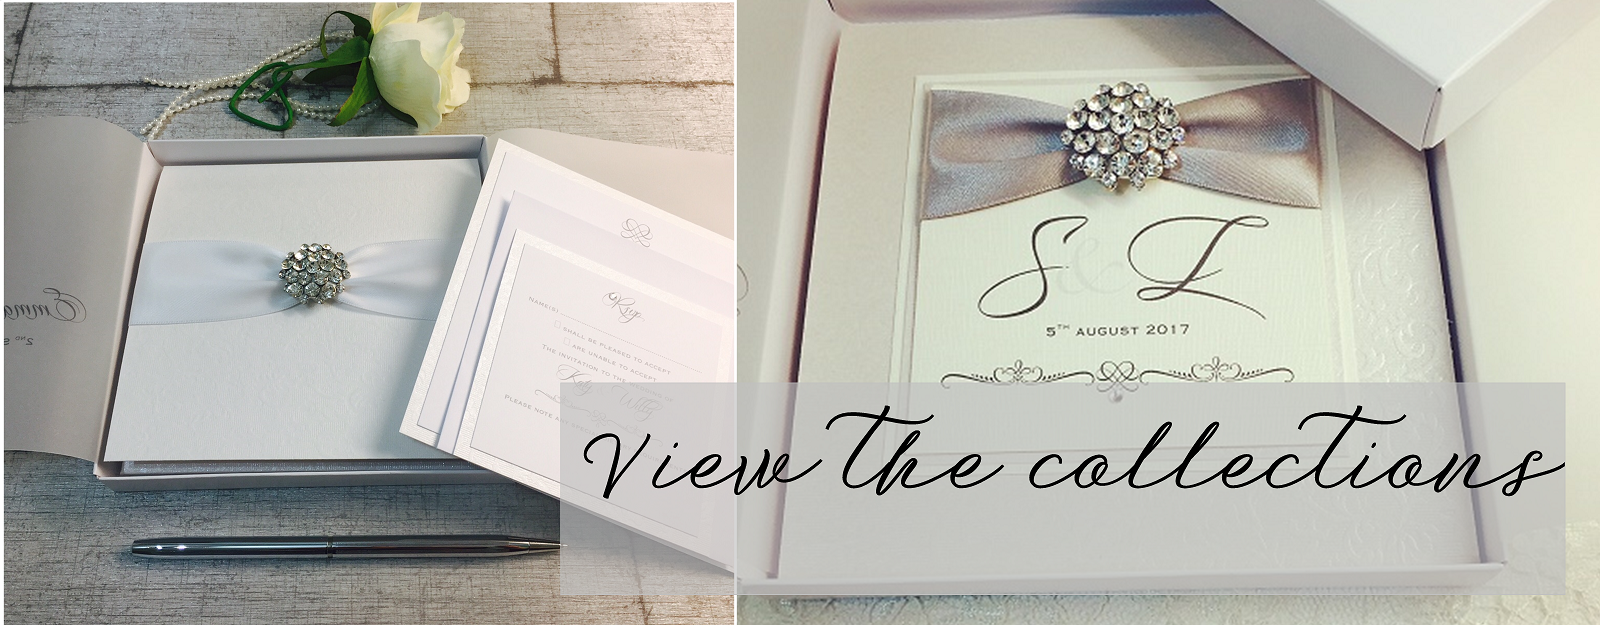 Luxury wedding invitations by Amor Designs